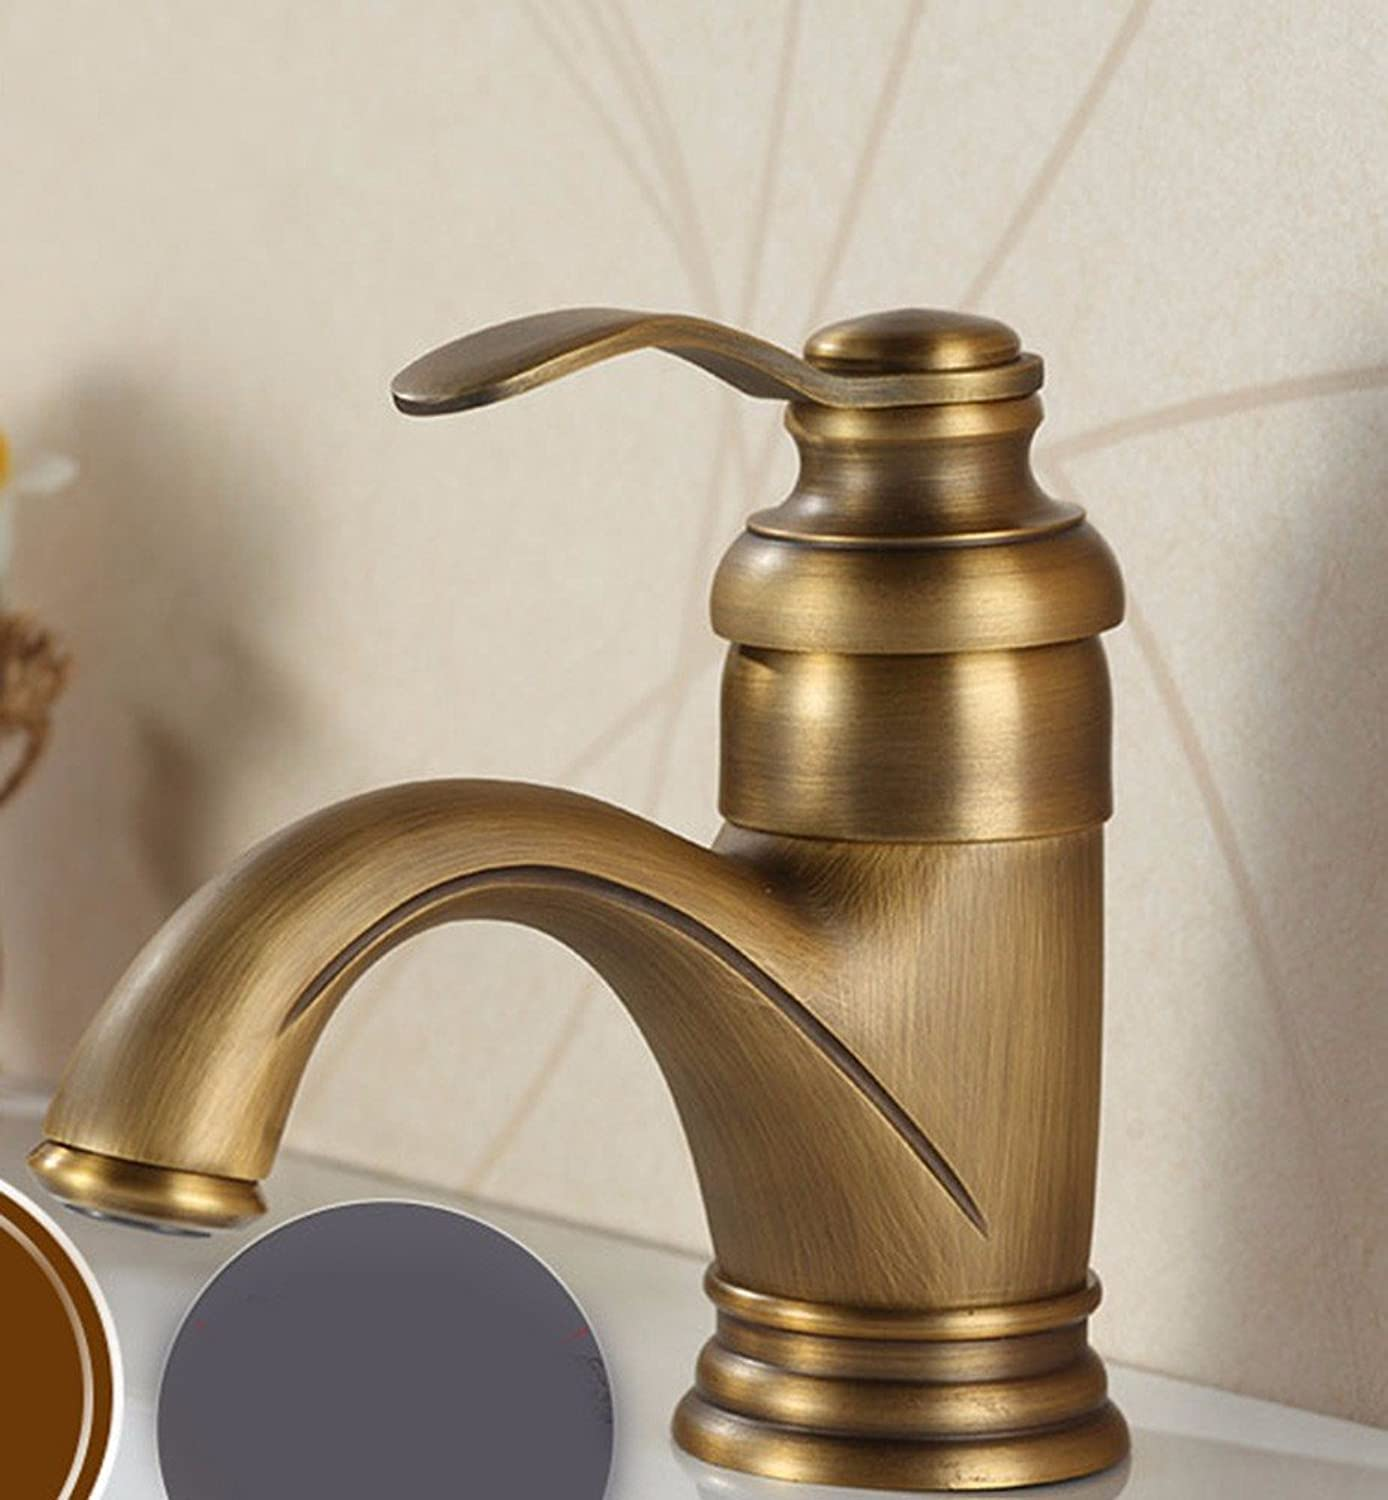 Hlluya Professional Sink Mixer Tap Kitchen Faucet Copper, hot and cold, bathroom, Single Hole basin, sink and faucet